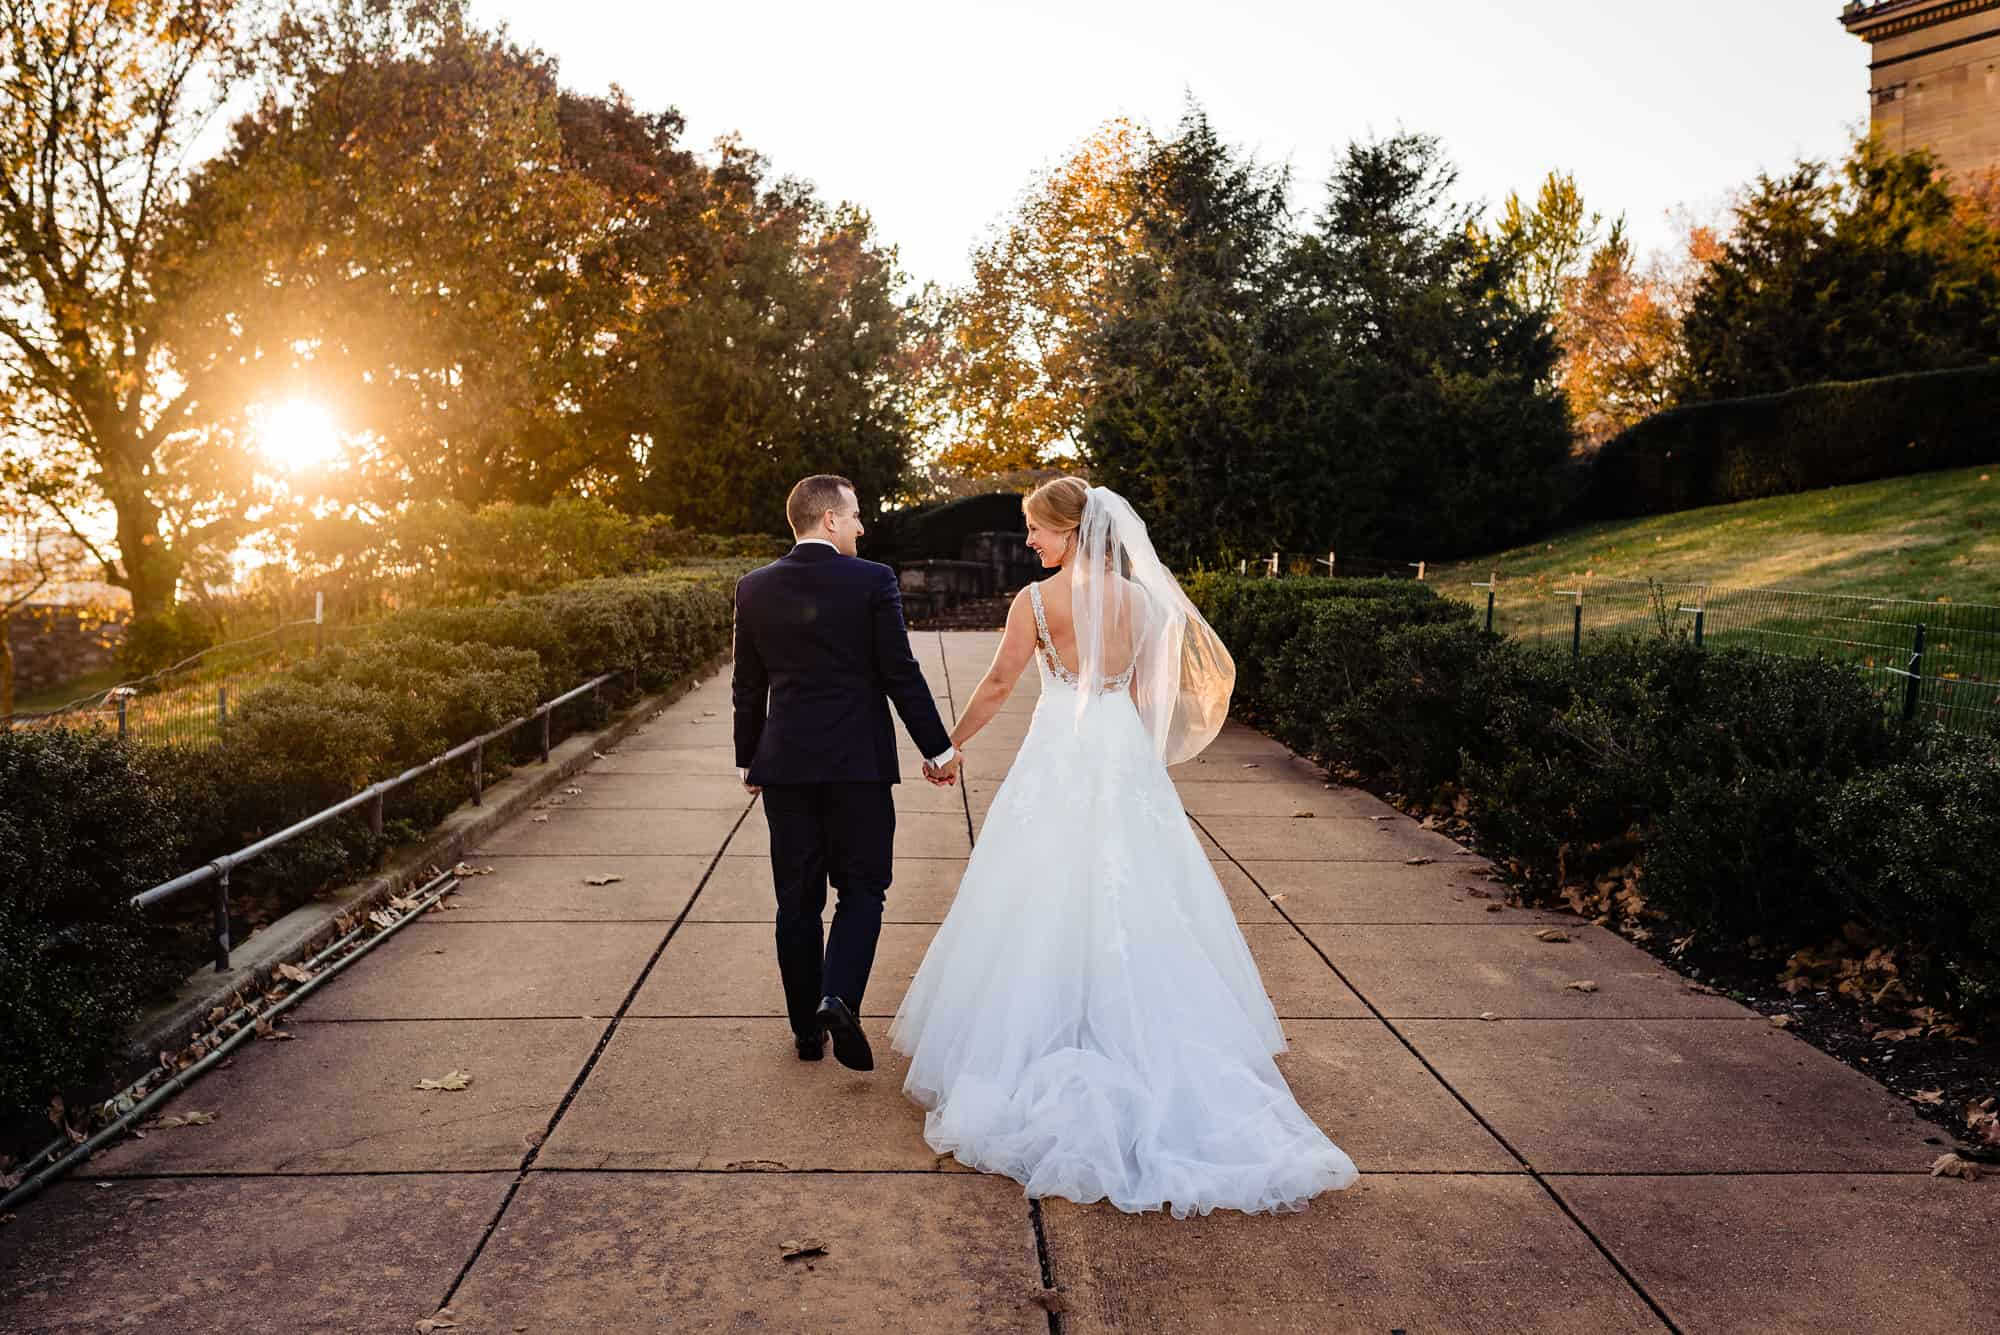 bride and groom walking hand in hand at sunset in epic wedding photo